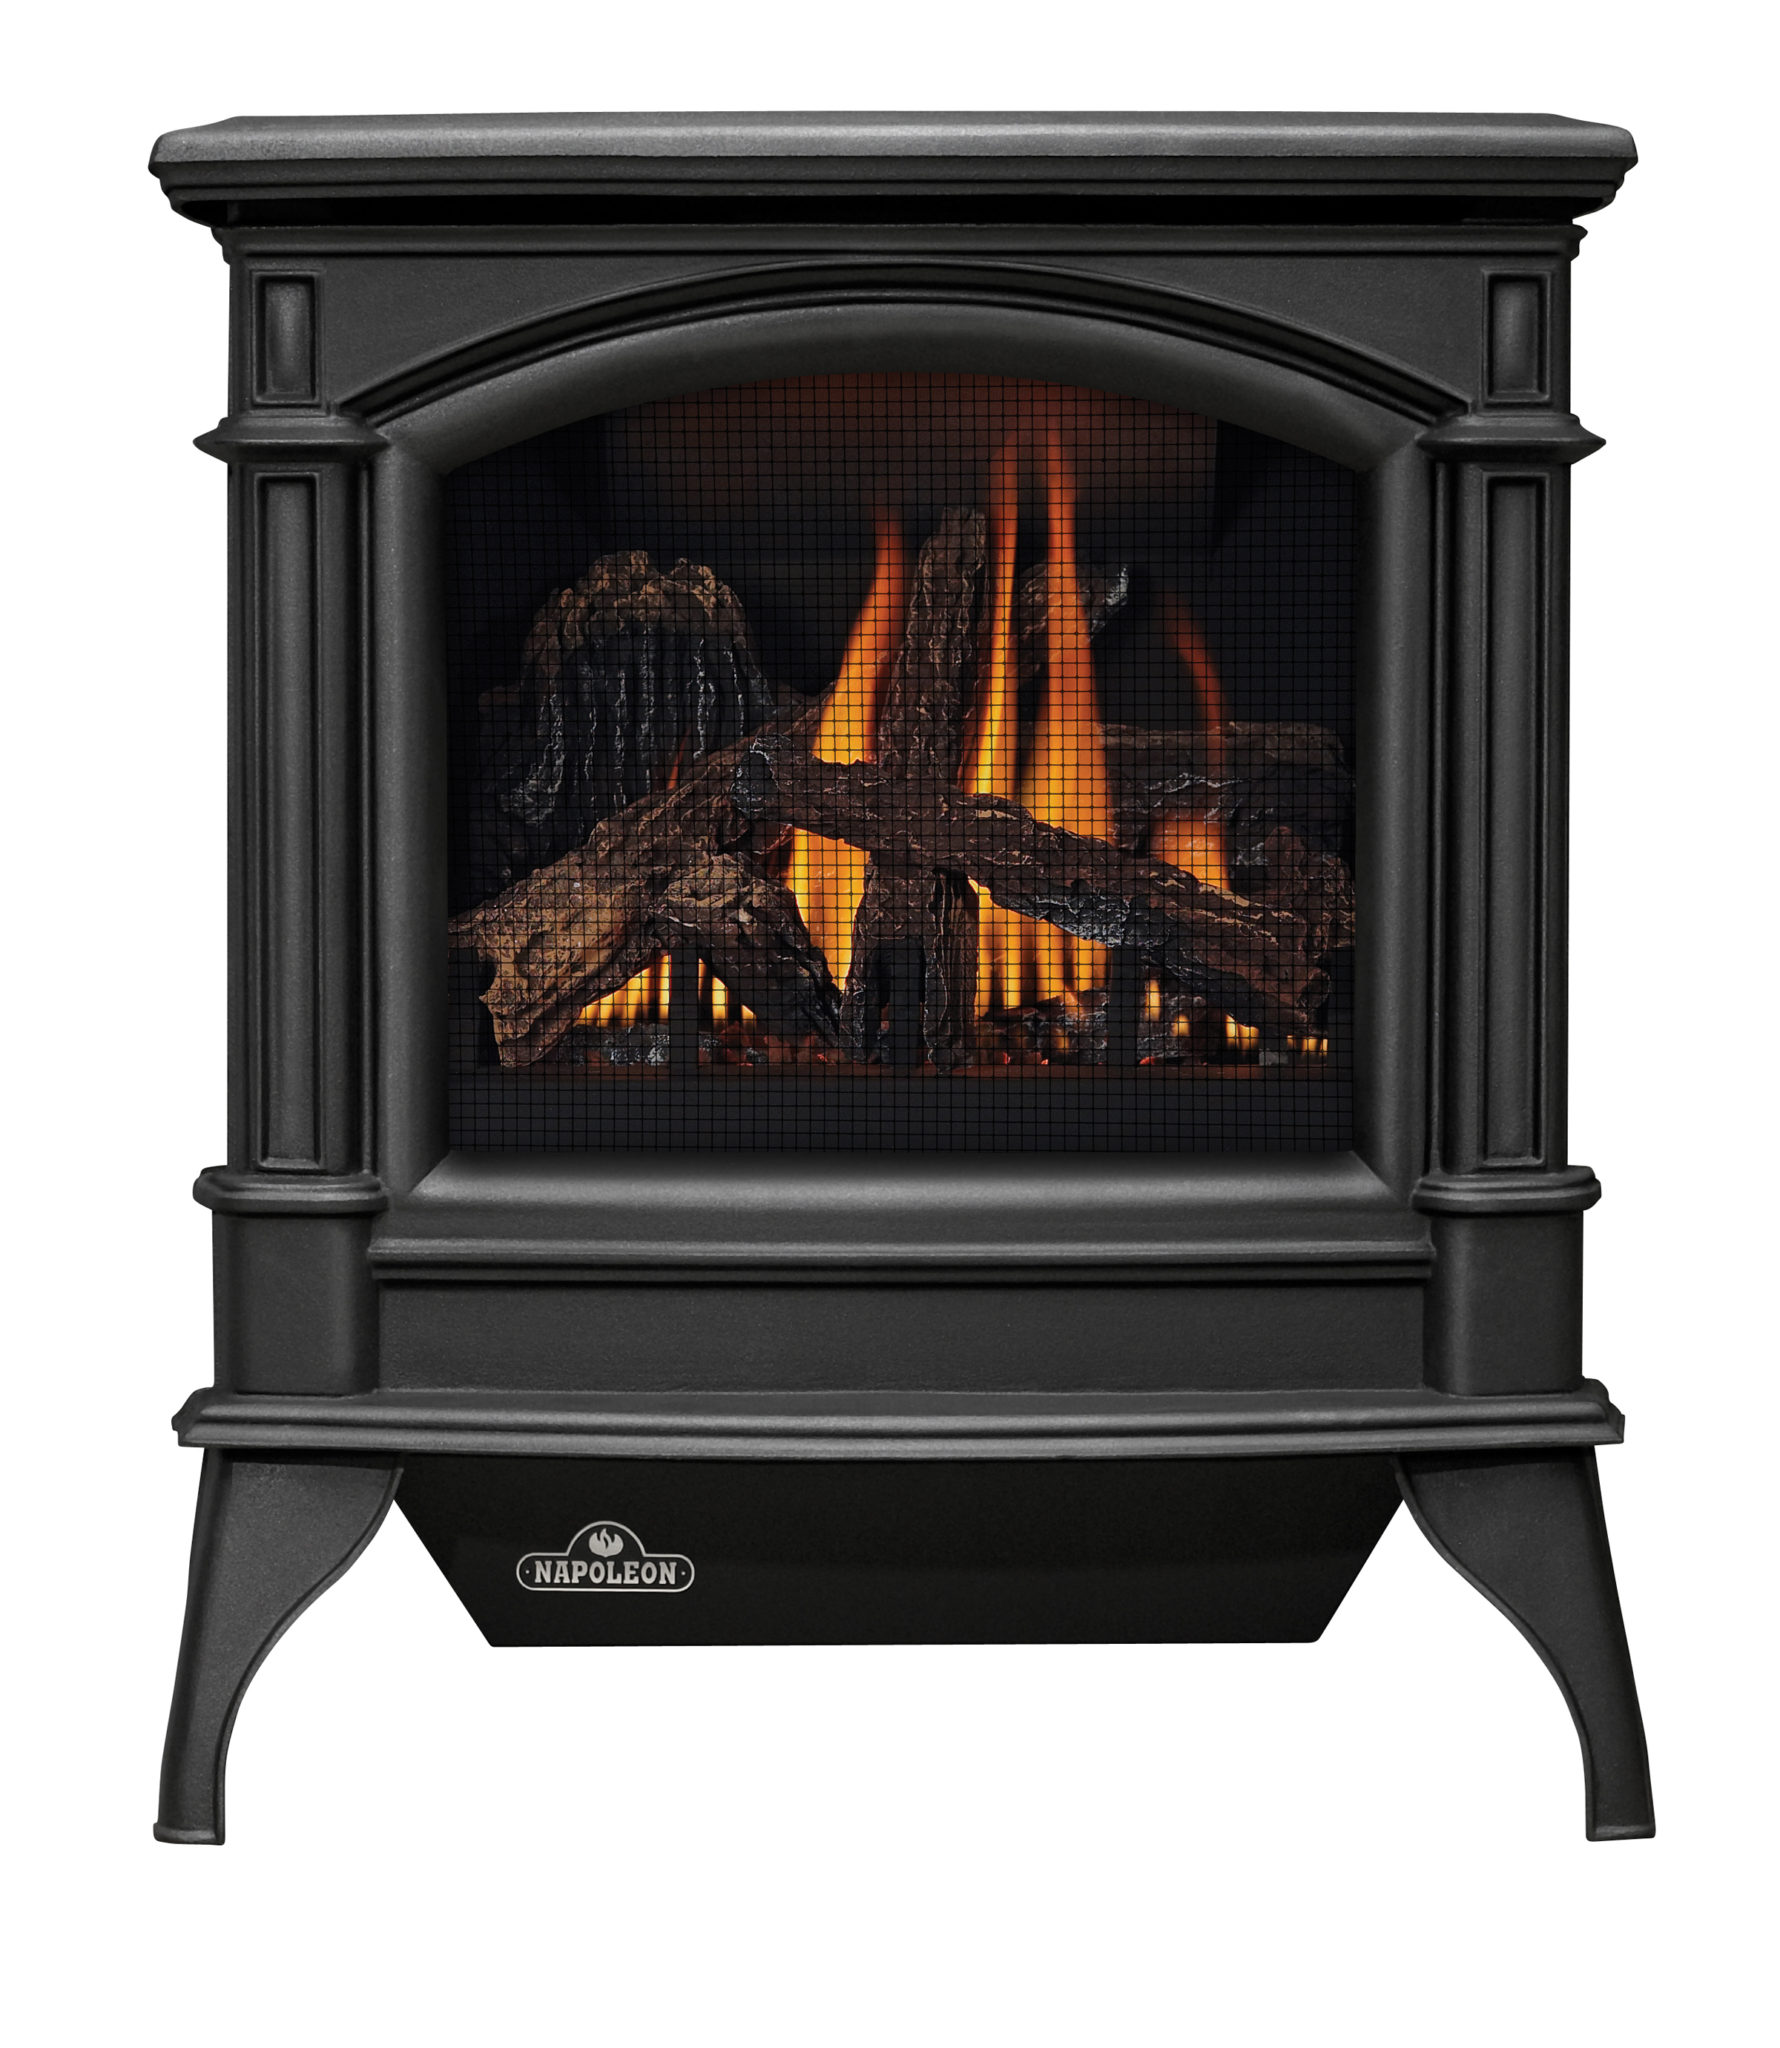 Napoleon Knightsbridge Vent Free Gas Stove ShopFireplace